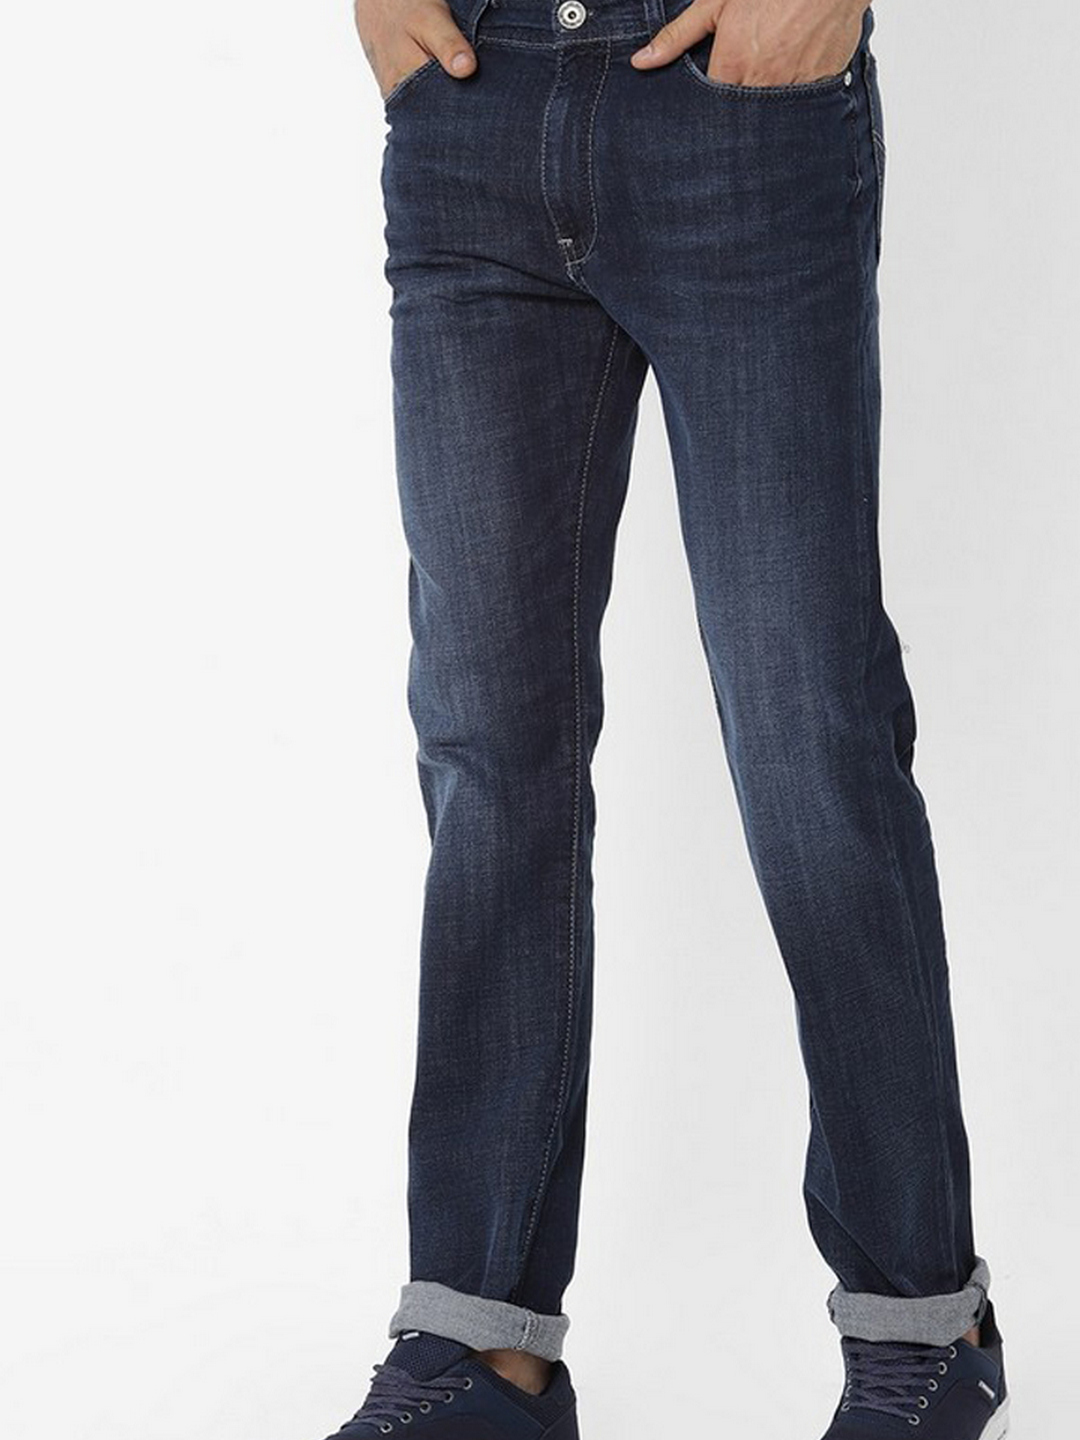 Men's Memphis Straight Fit Blue Jeans